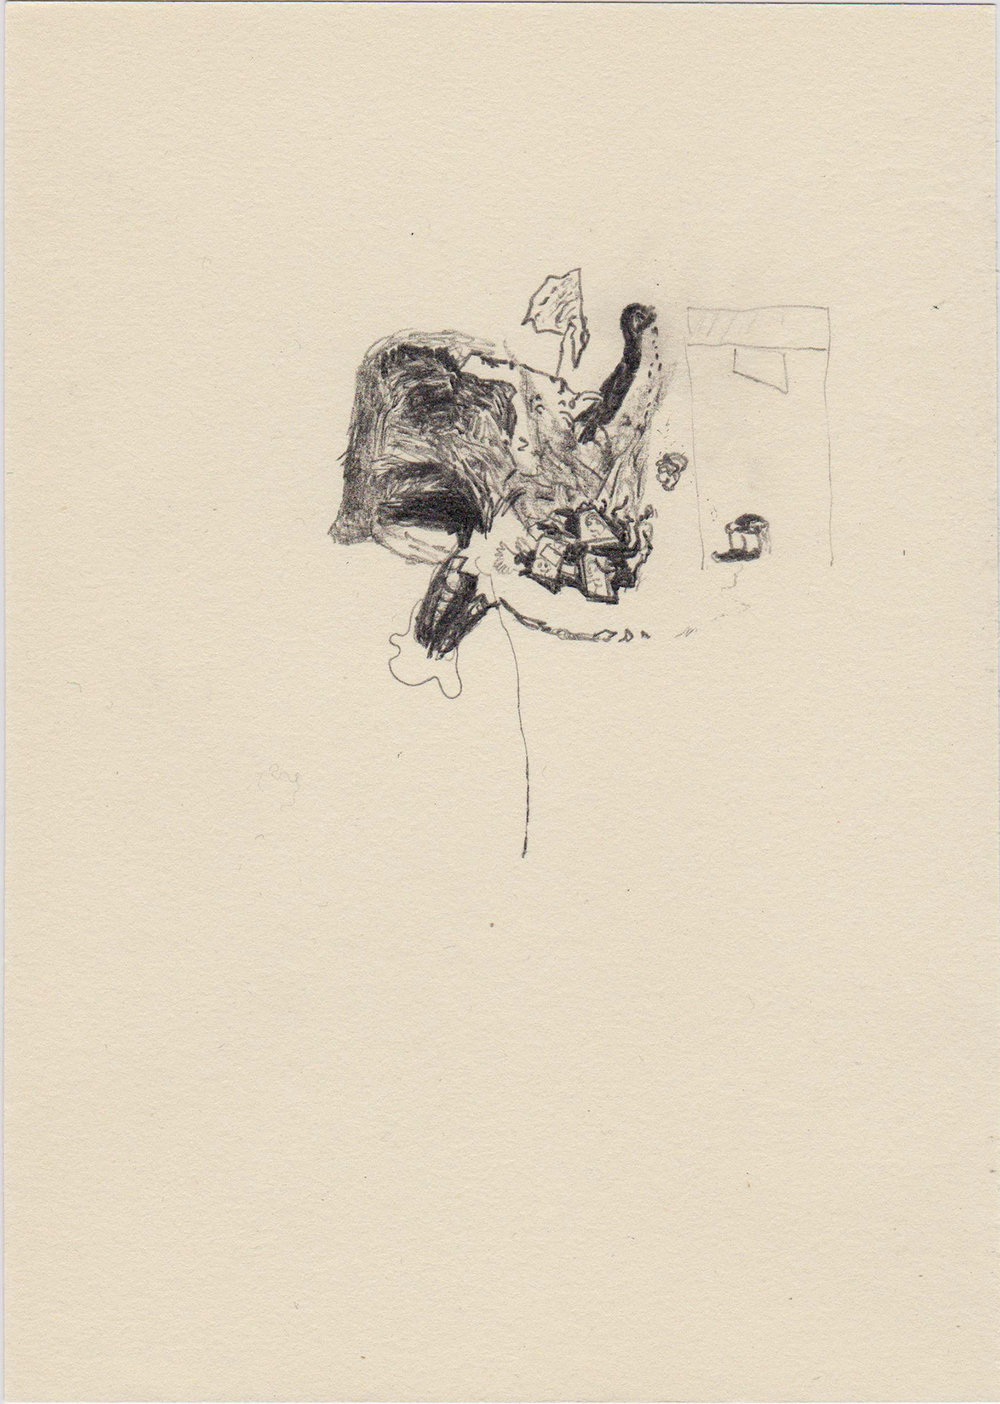 Judging machine, 2015; Pencil on paper; 20 x 14,5 cm